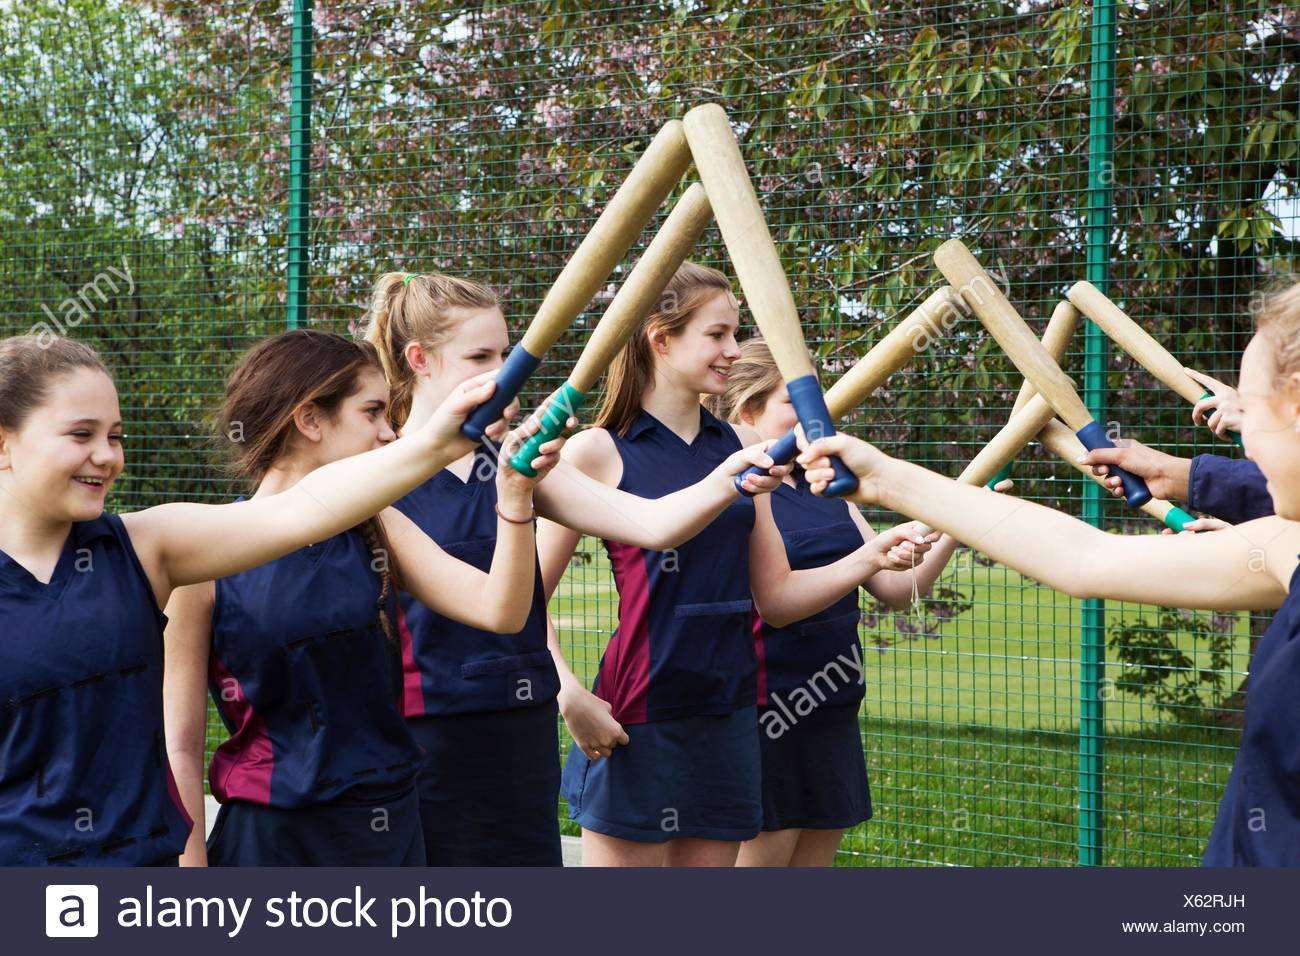 Group of students putting rounders bats together - Stock Image